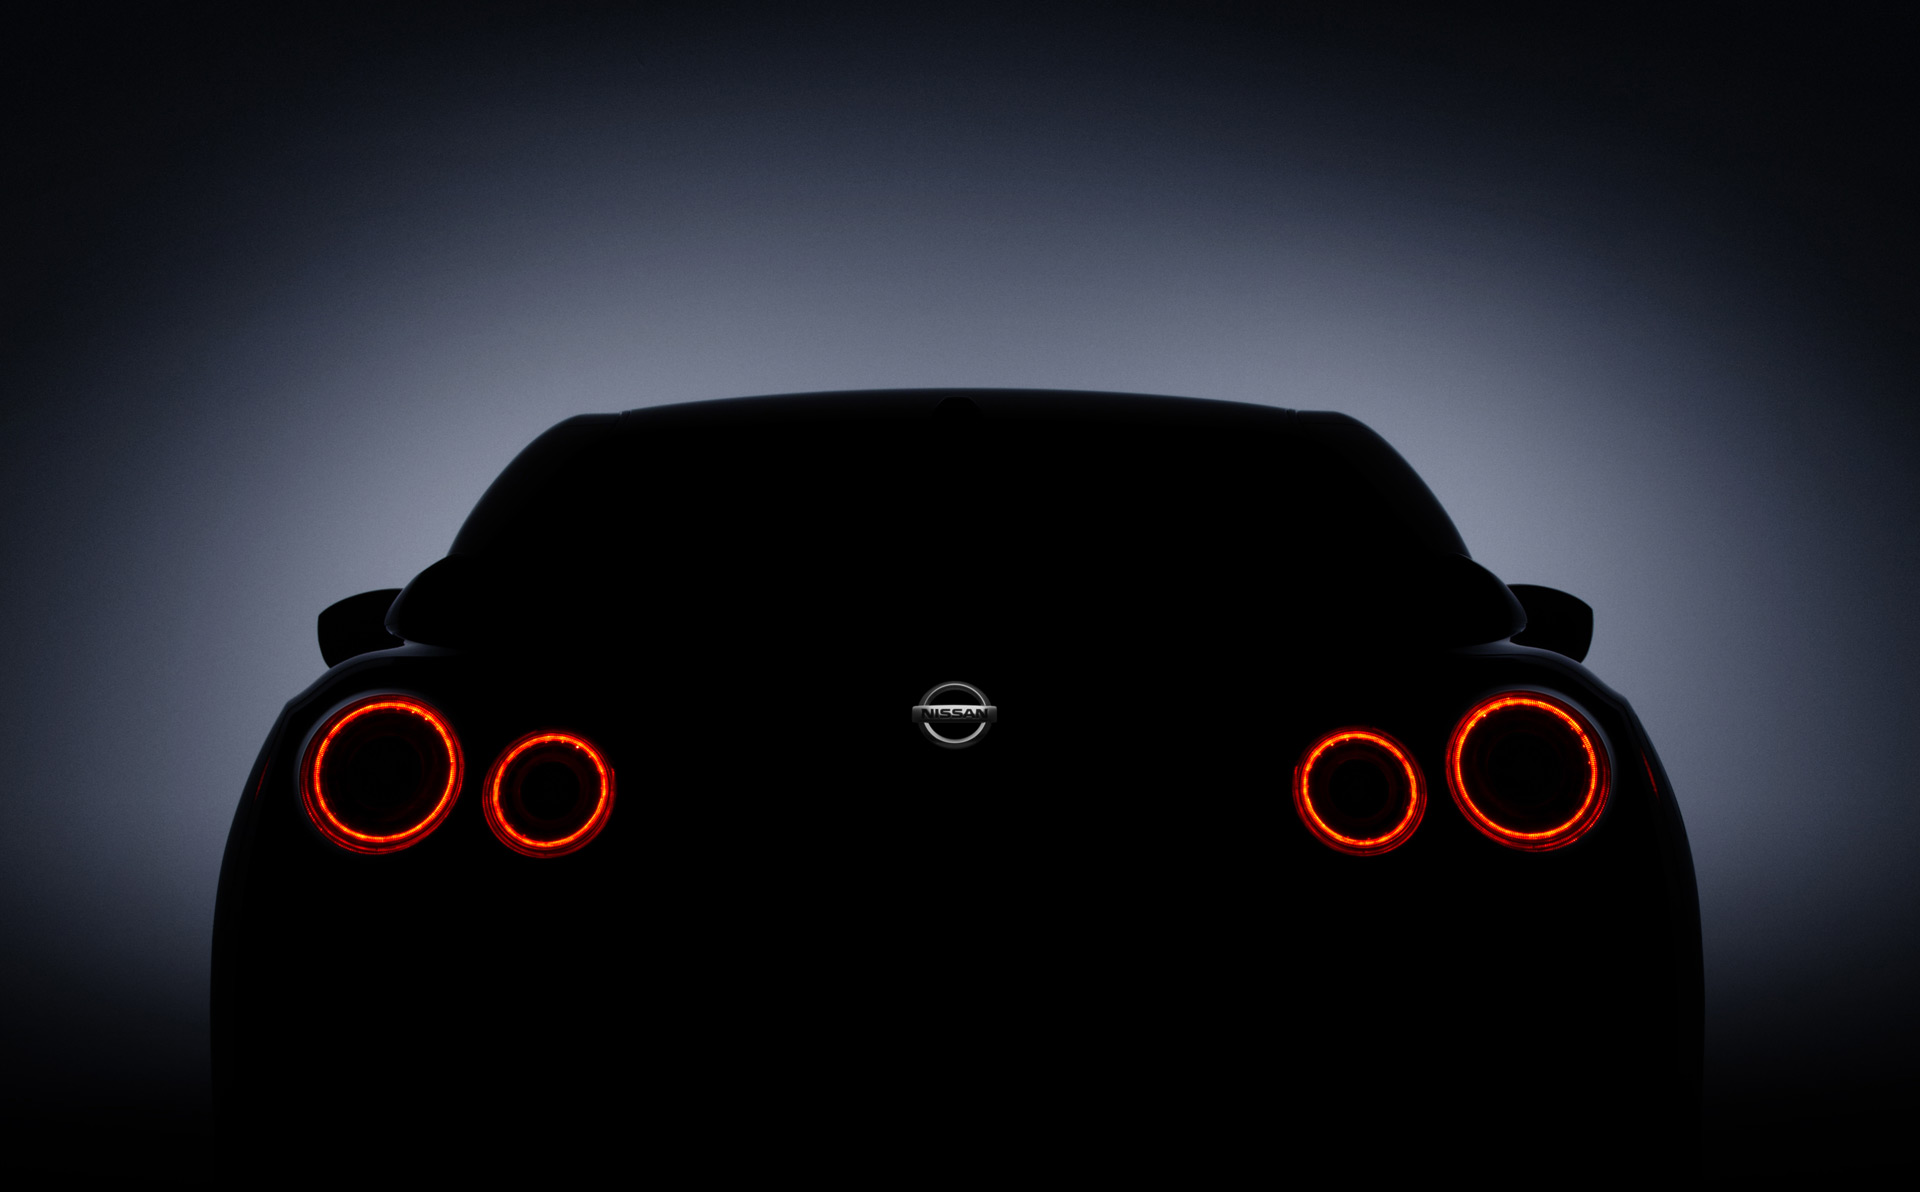 Build Ford F150 2017 Nissan GT-R teased ahead of 2016 New York Auto Show